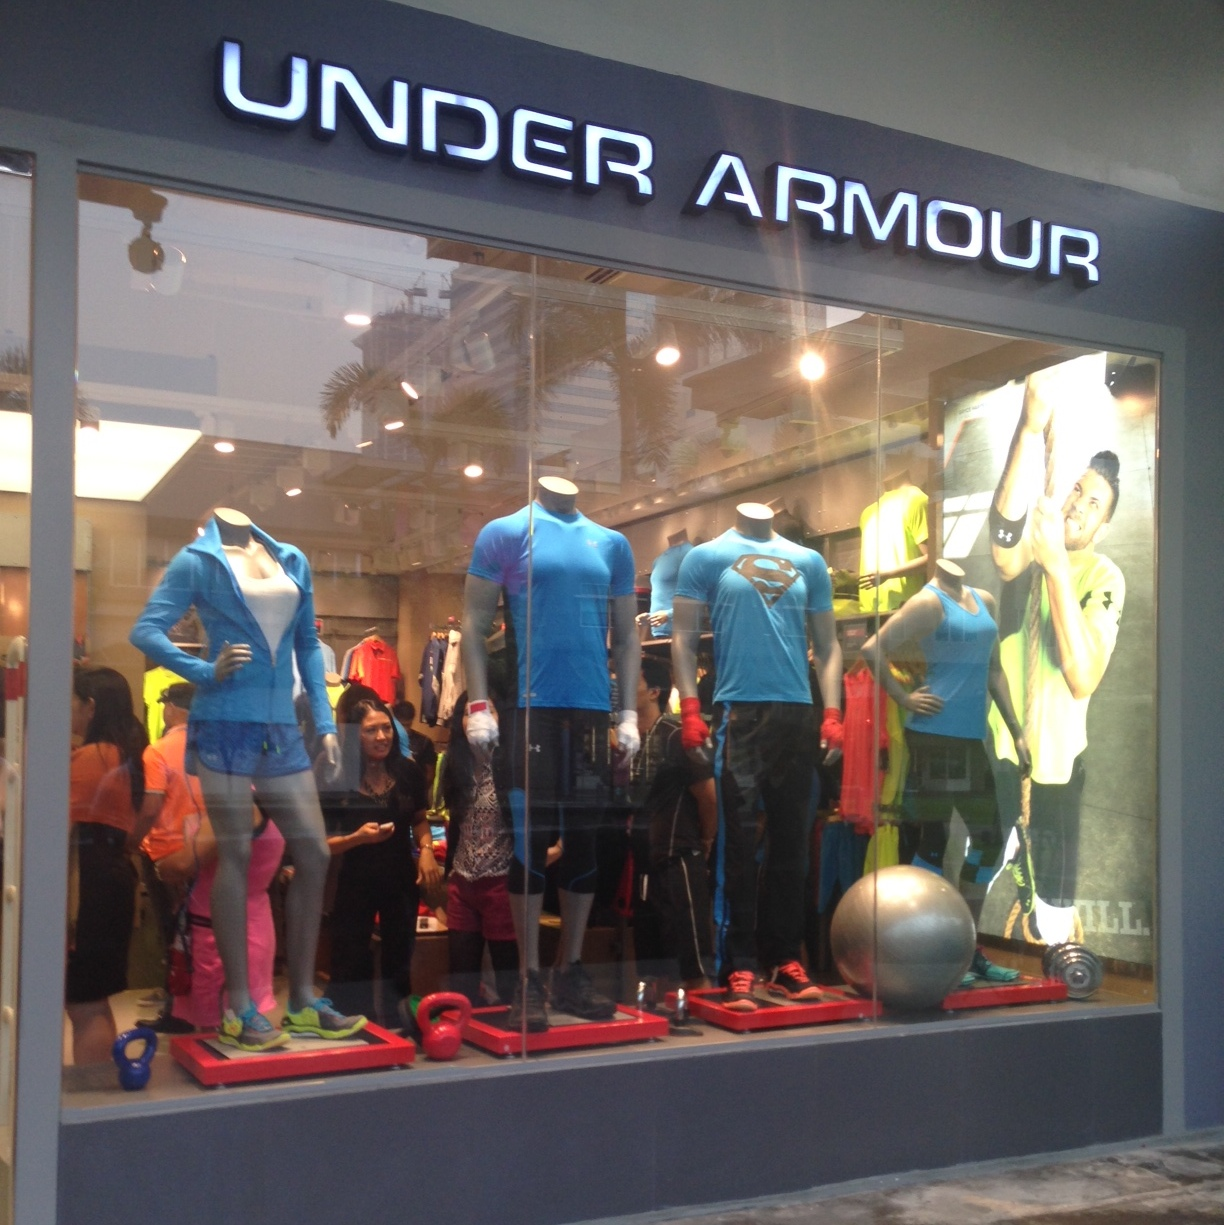 The Under Armour brand is today synonymous to quality apparel and accessories. Their mission statement is to make all athletes better. Whether you are an athlete or not, with Under Armour you will definitely equip better. What are you waiting for? Shop the tactical series line of Under Armour products in the Philippines at Tactical Asia.